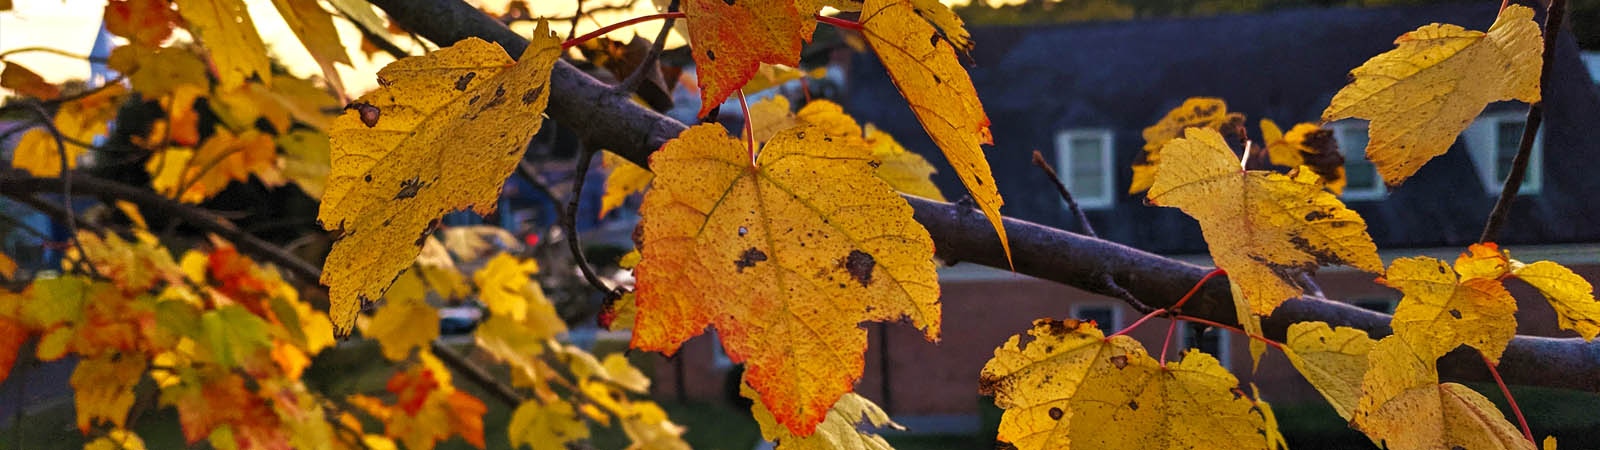 Staunton's Fall Foliage Report:  Weekend of October 11-13